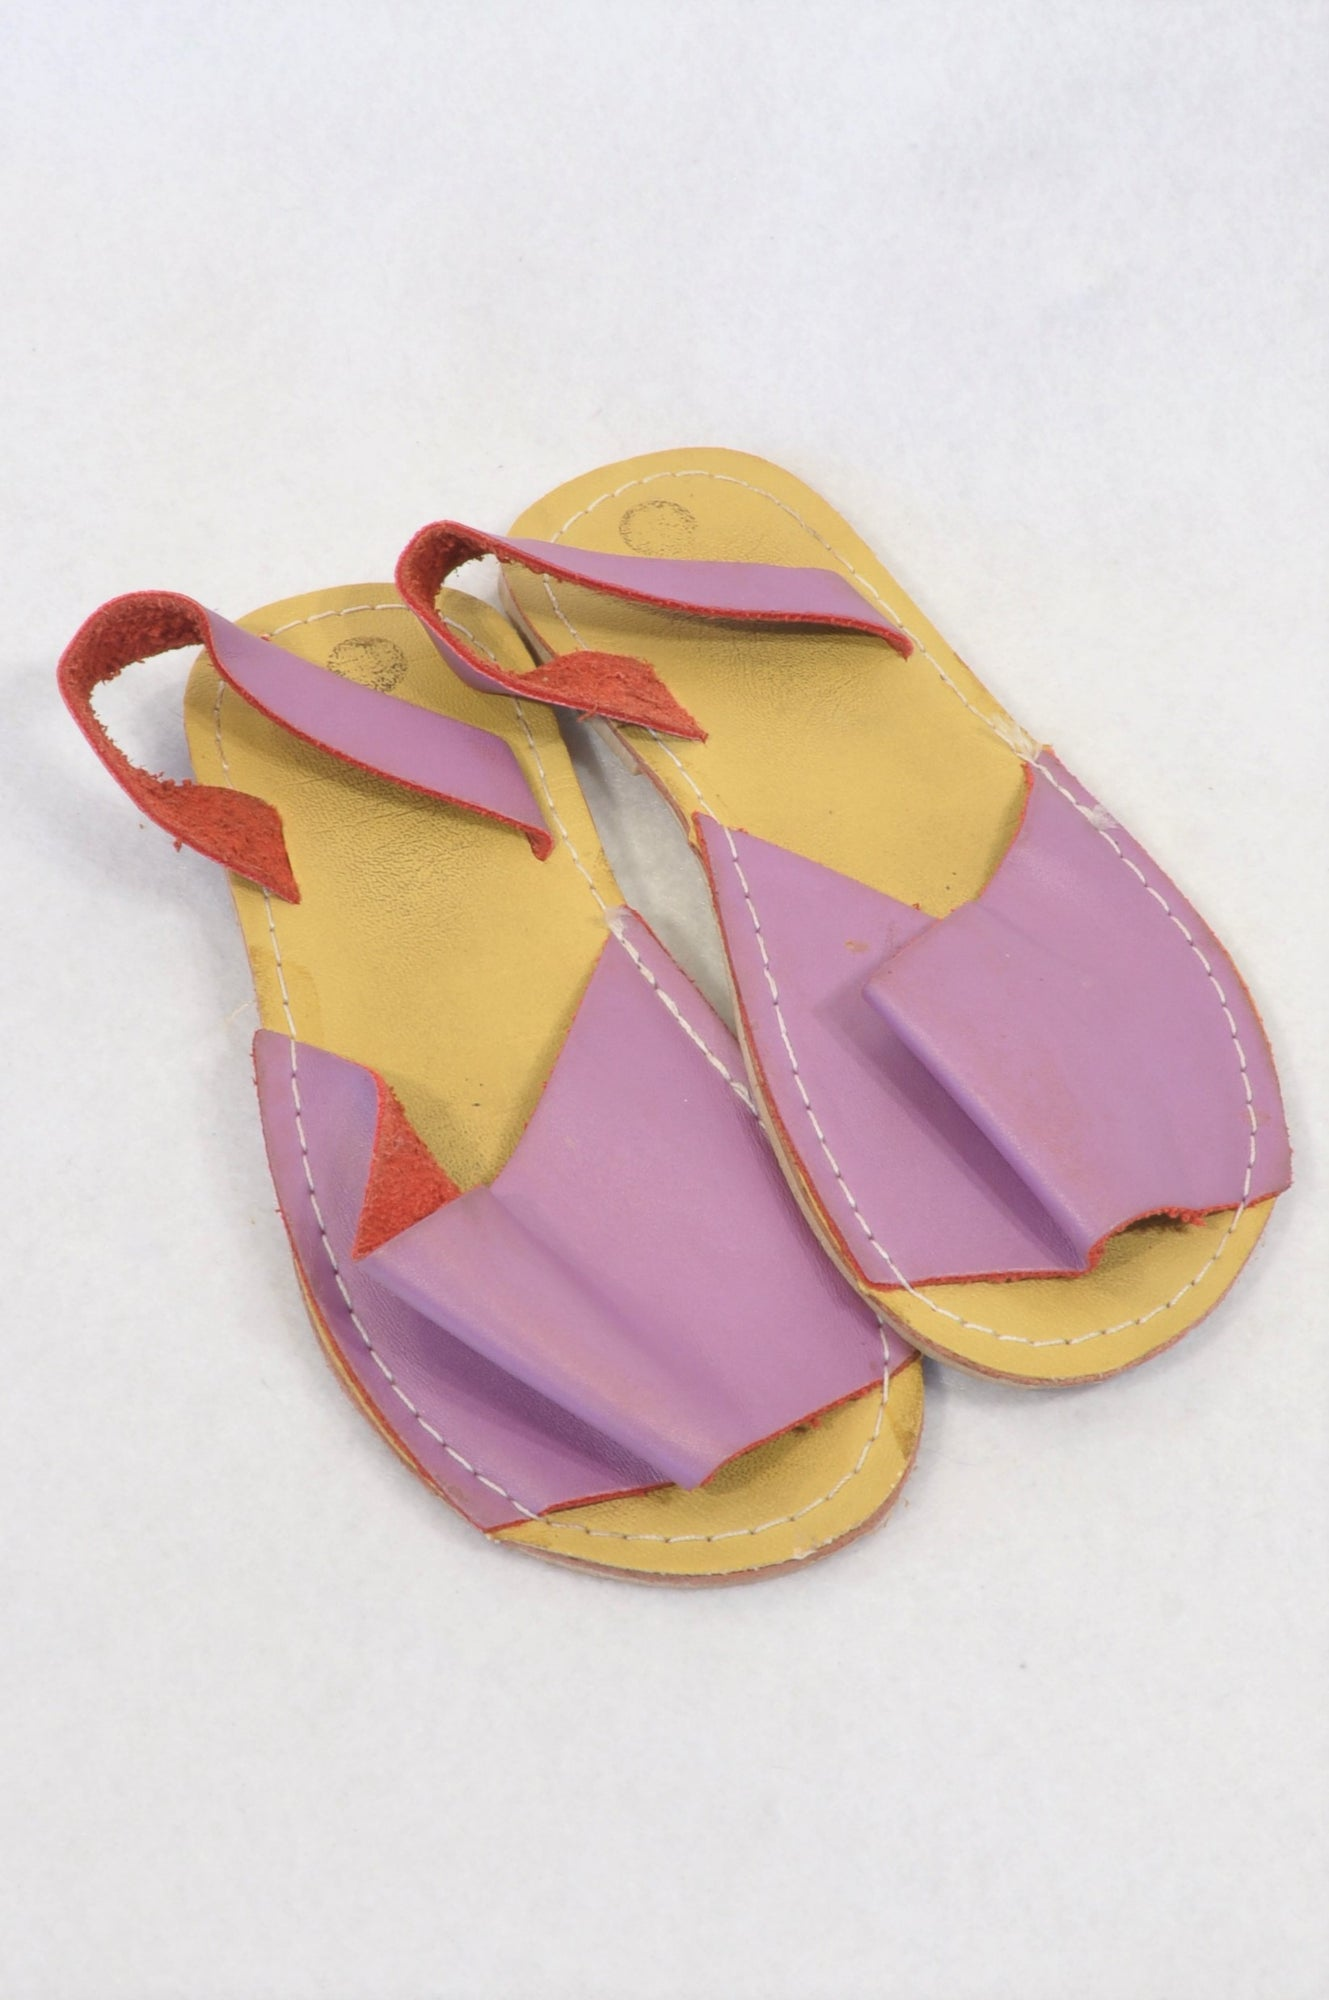 Woolworths Size 11 Purple Strap Leather Sandals Girls 6-7 years